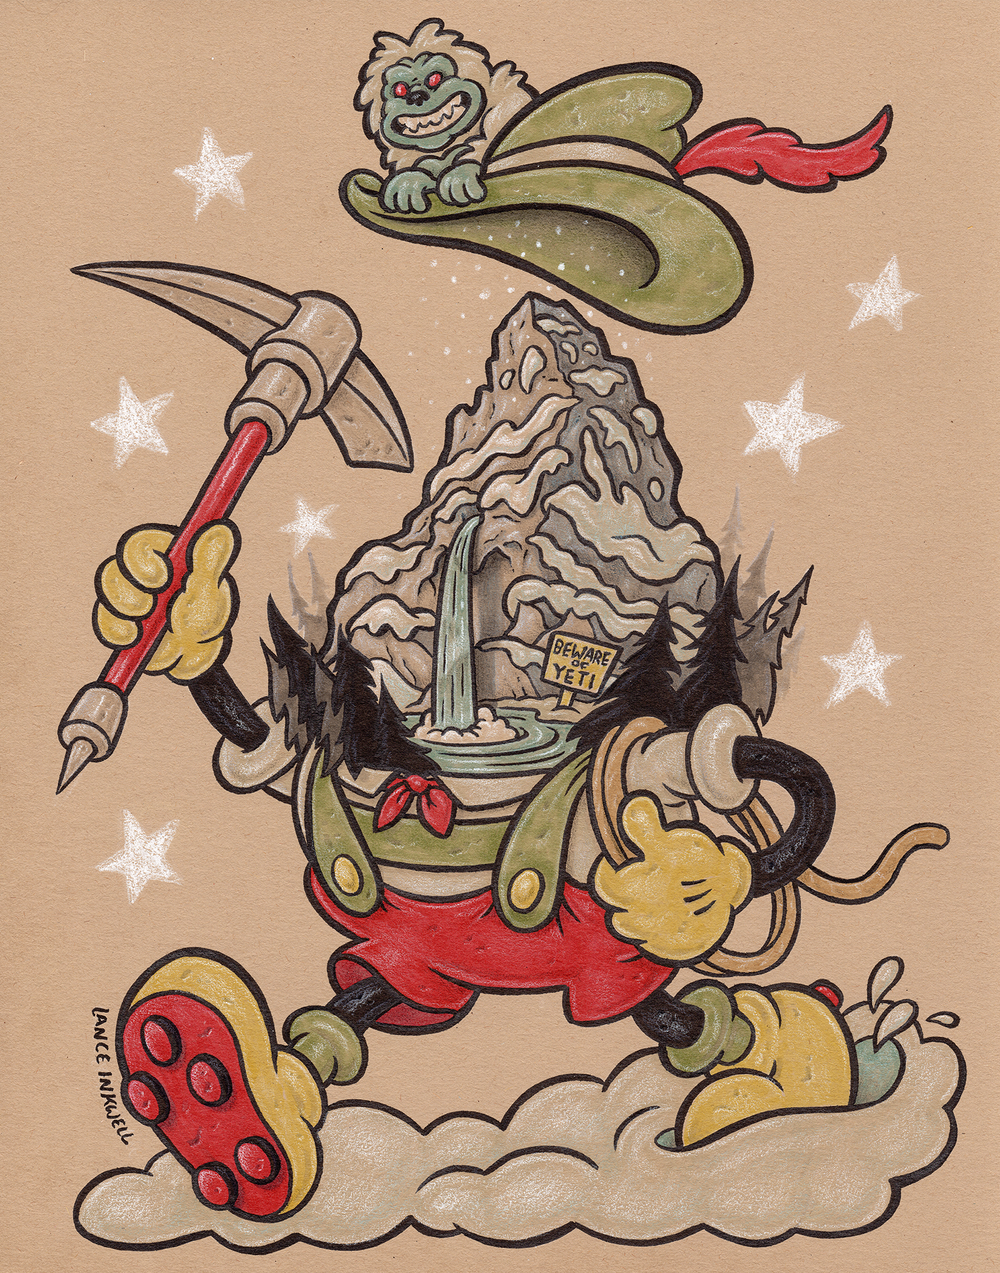 """Matterhorn Mountain Climber"" - 11""x14"" Ink, Marker, and Color Pencil on Toned Paper. $200  Call Abstract Denver to purchase- 1 (720) 937-9722"